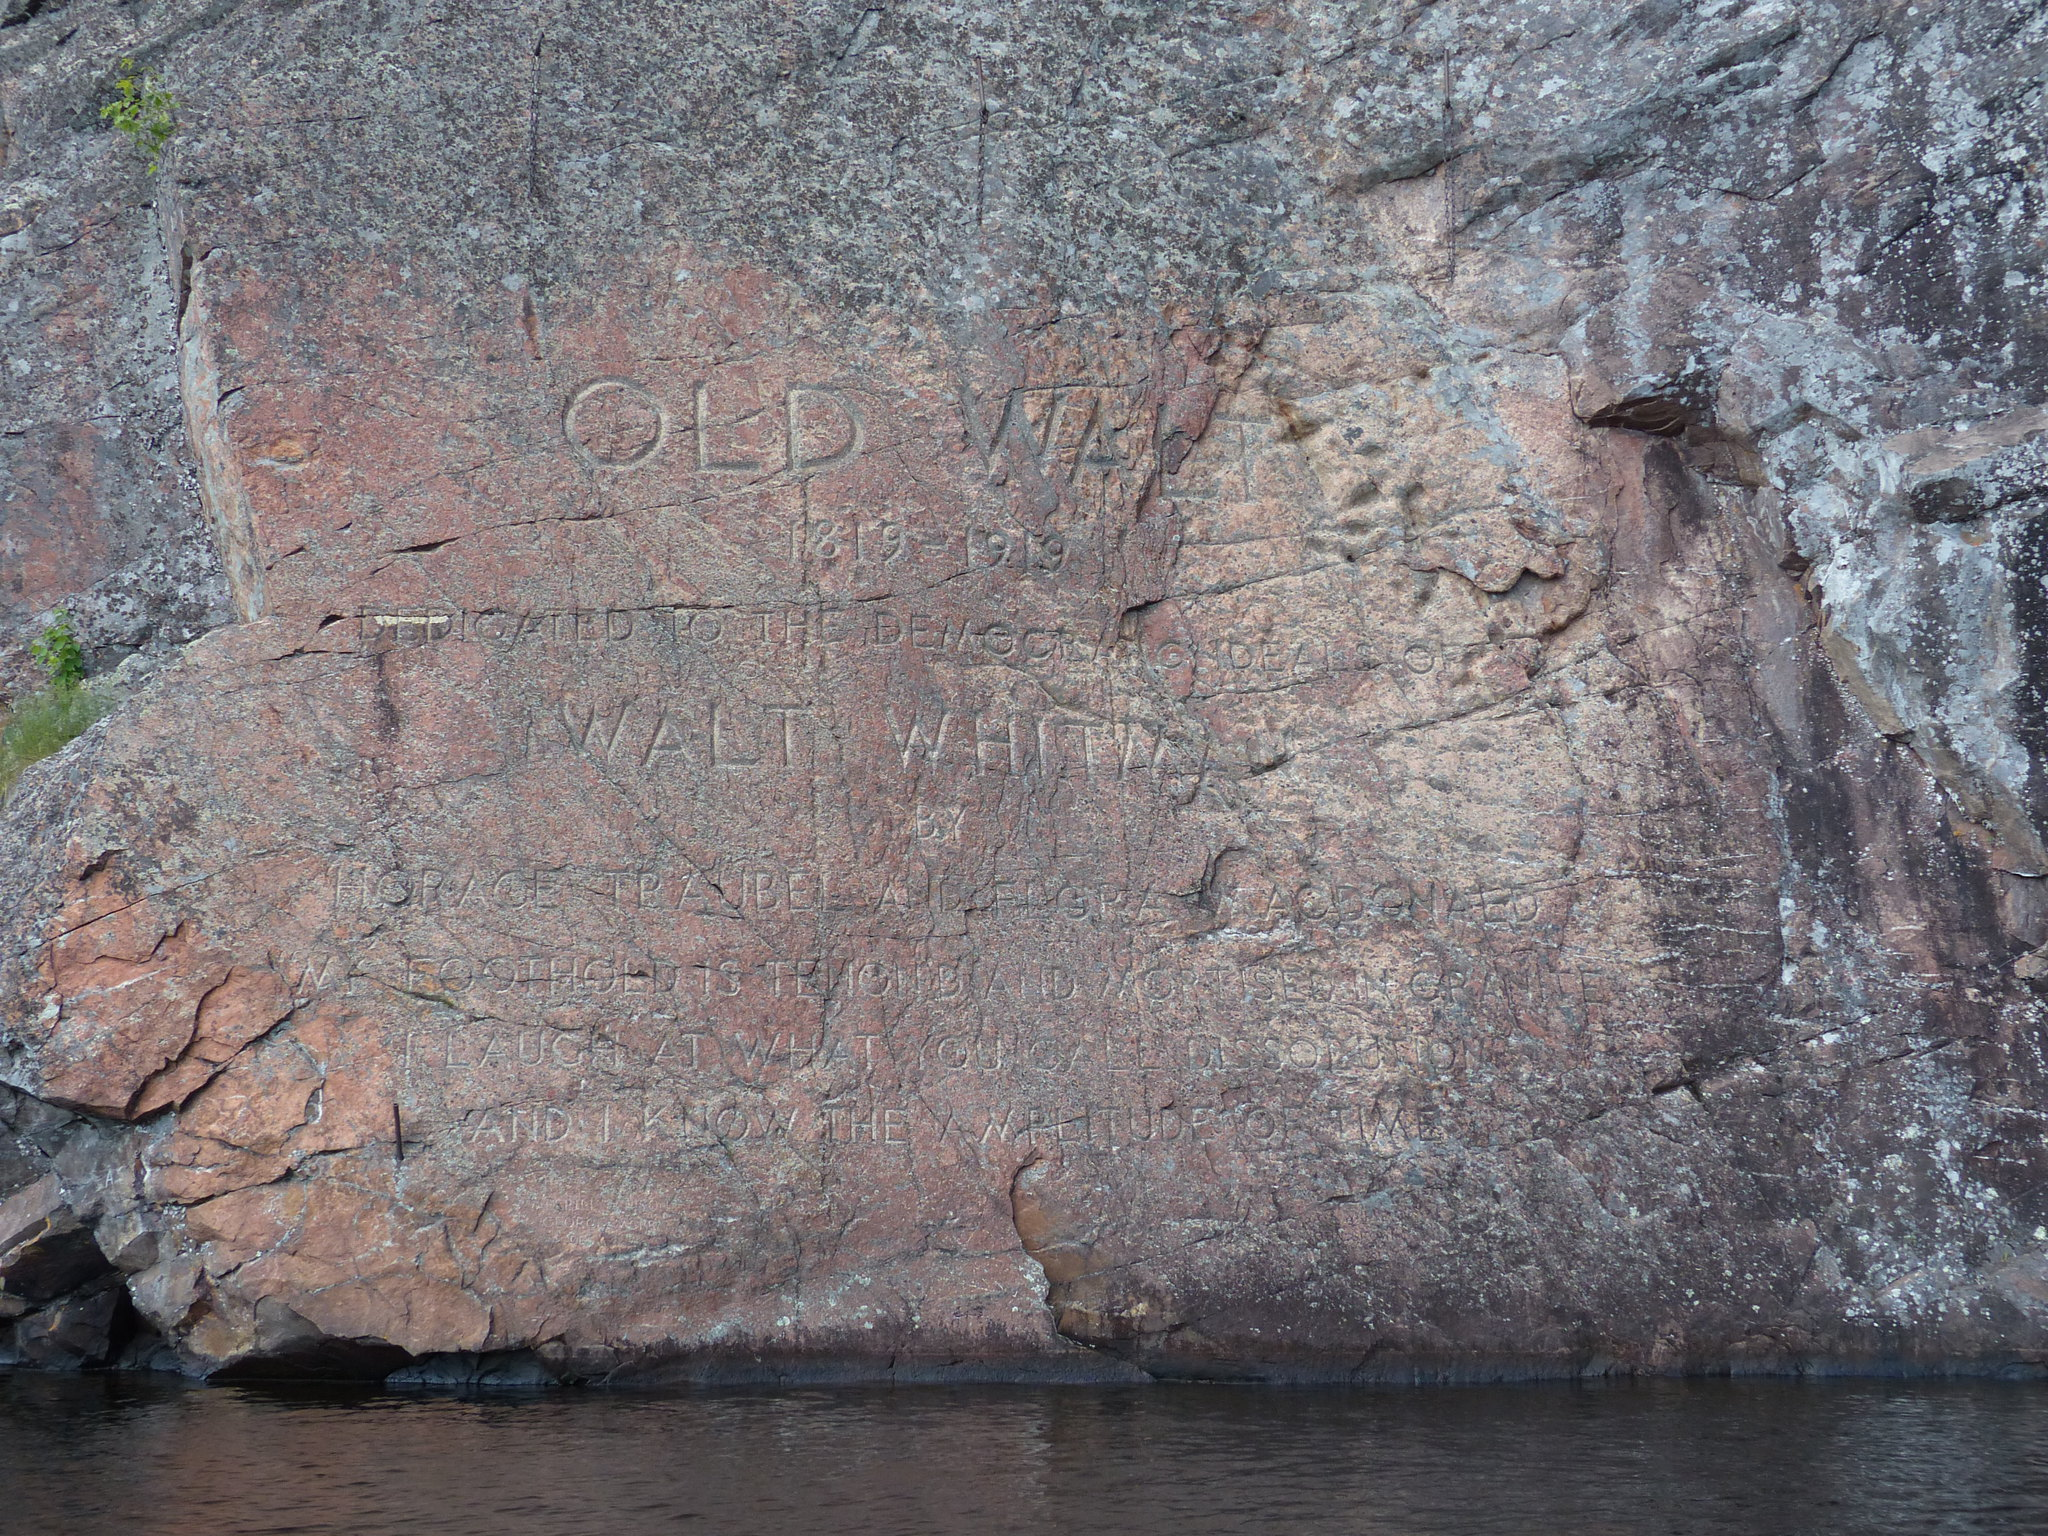 Bon Echo Provincial Park Walt Whitman tribute